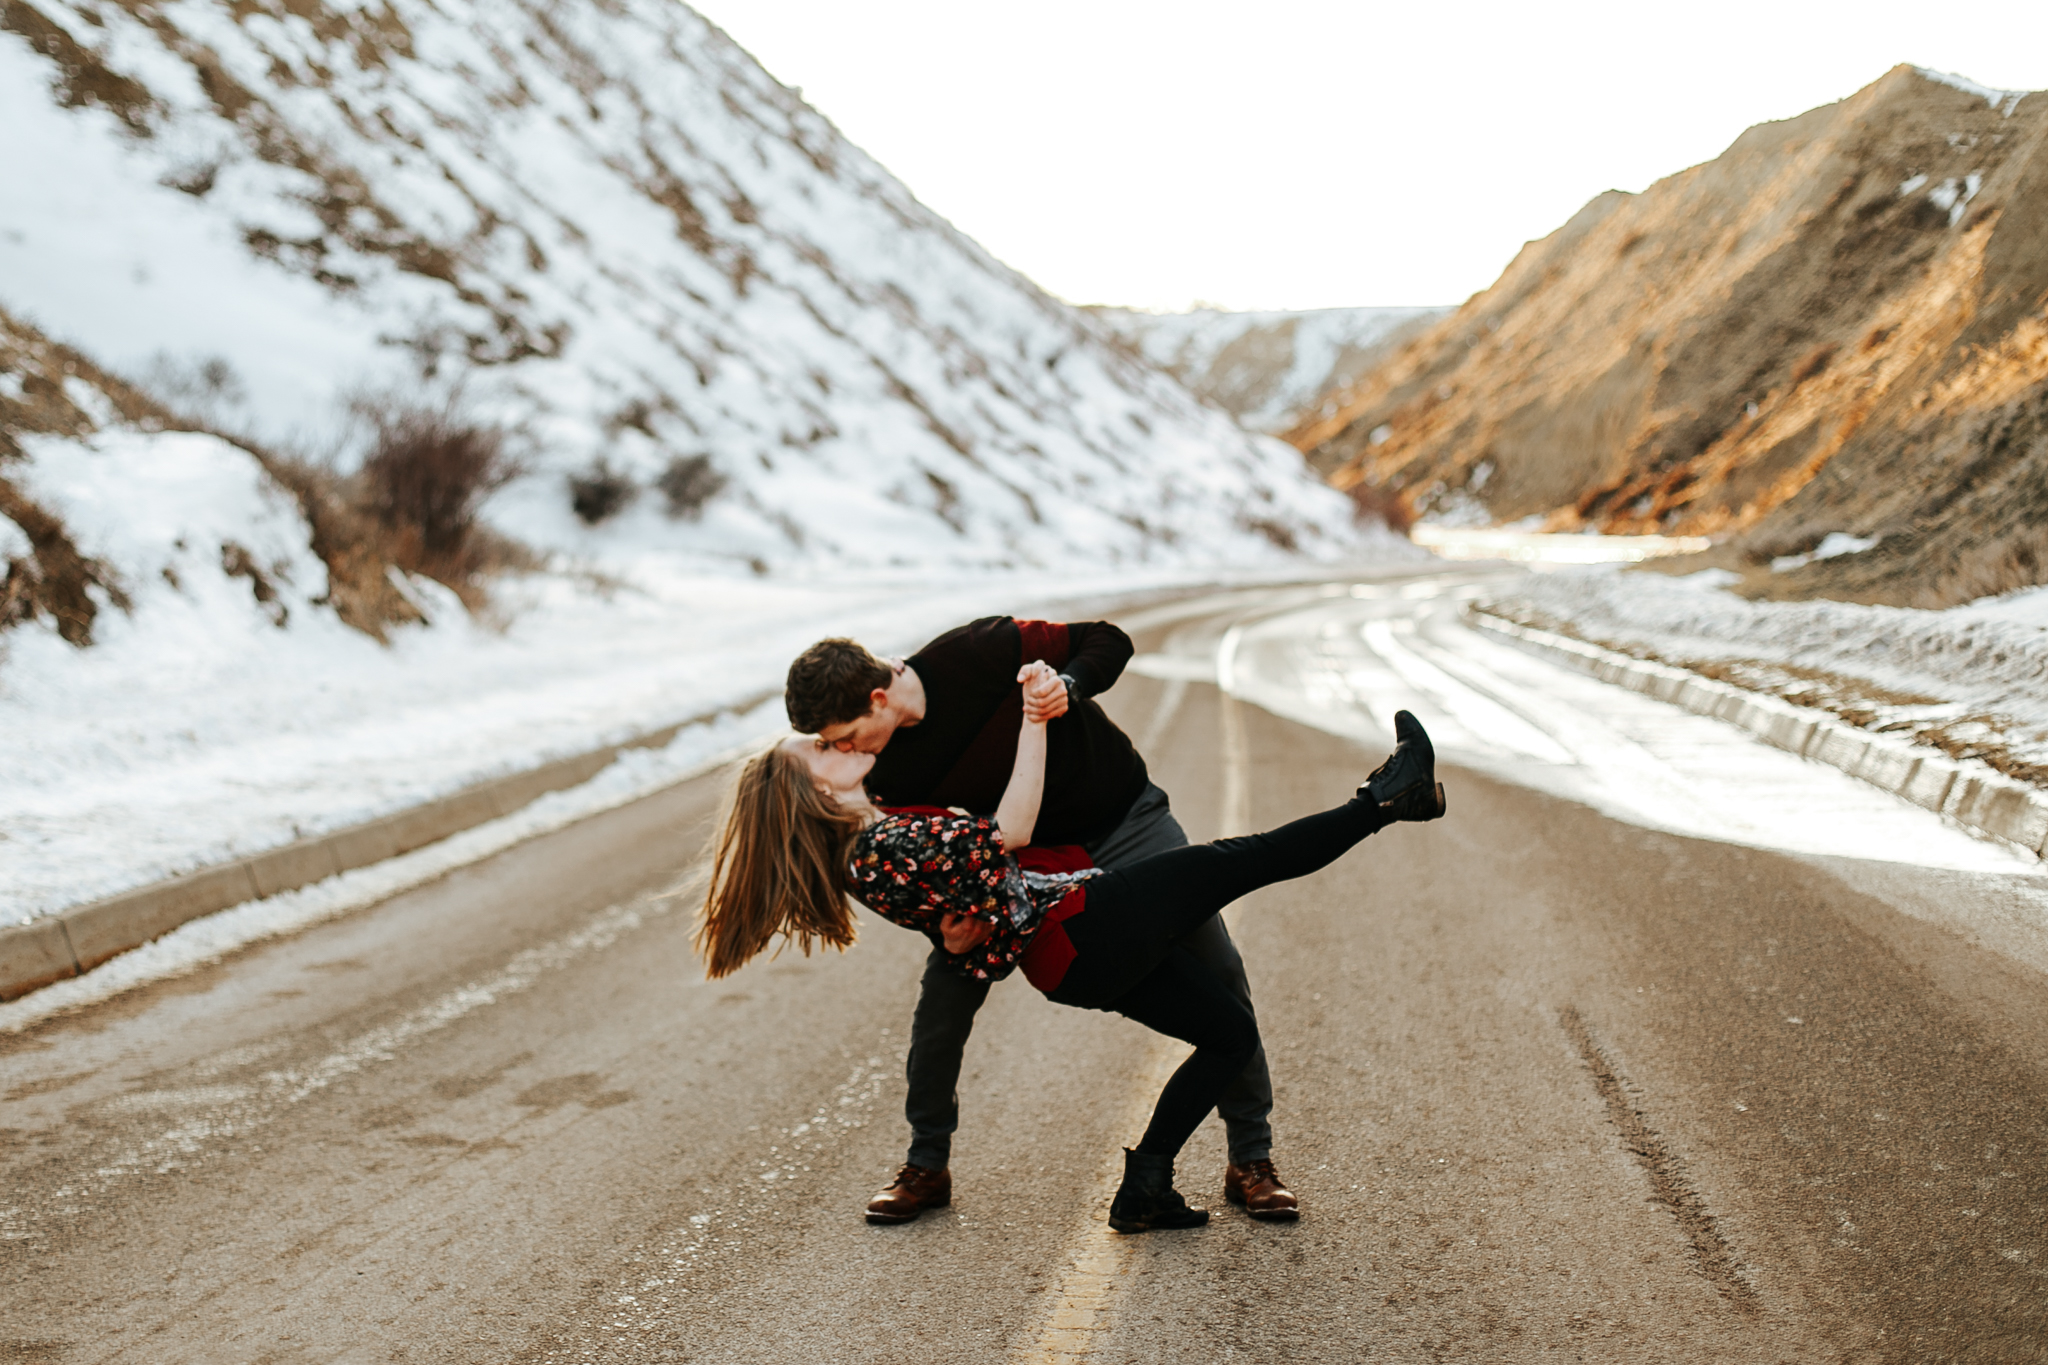 lethbridge-photographer-love-and-be-loved-photography-wedding-engagement-coulees-stuart-lacey-pavan-park-photo-image-picture-53.jpg